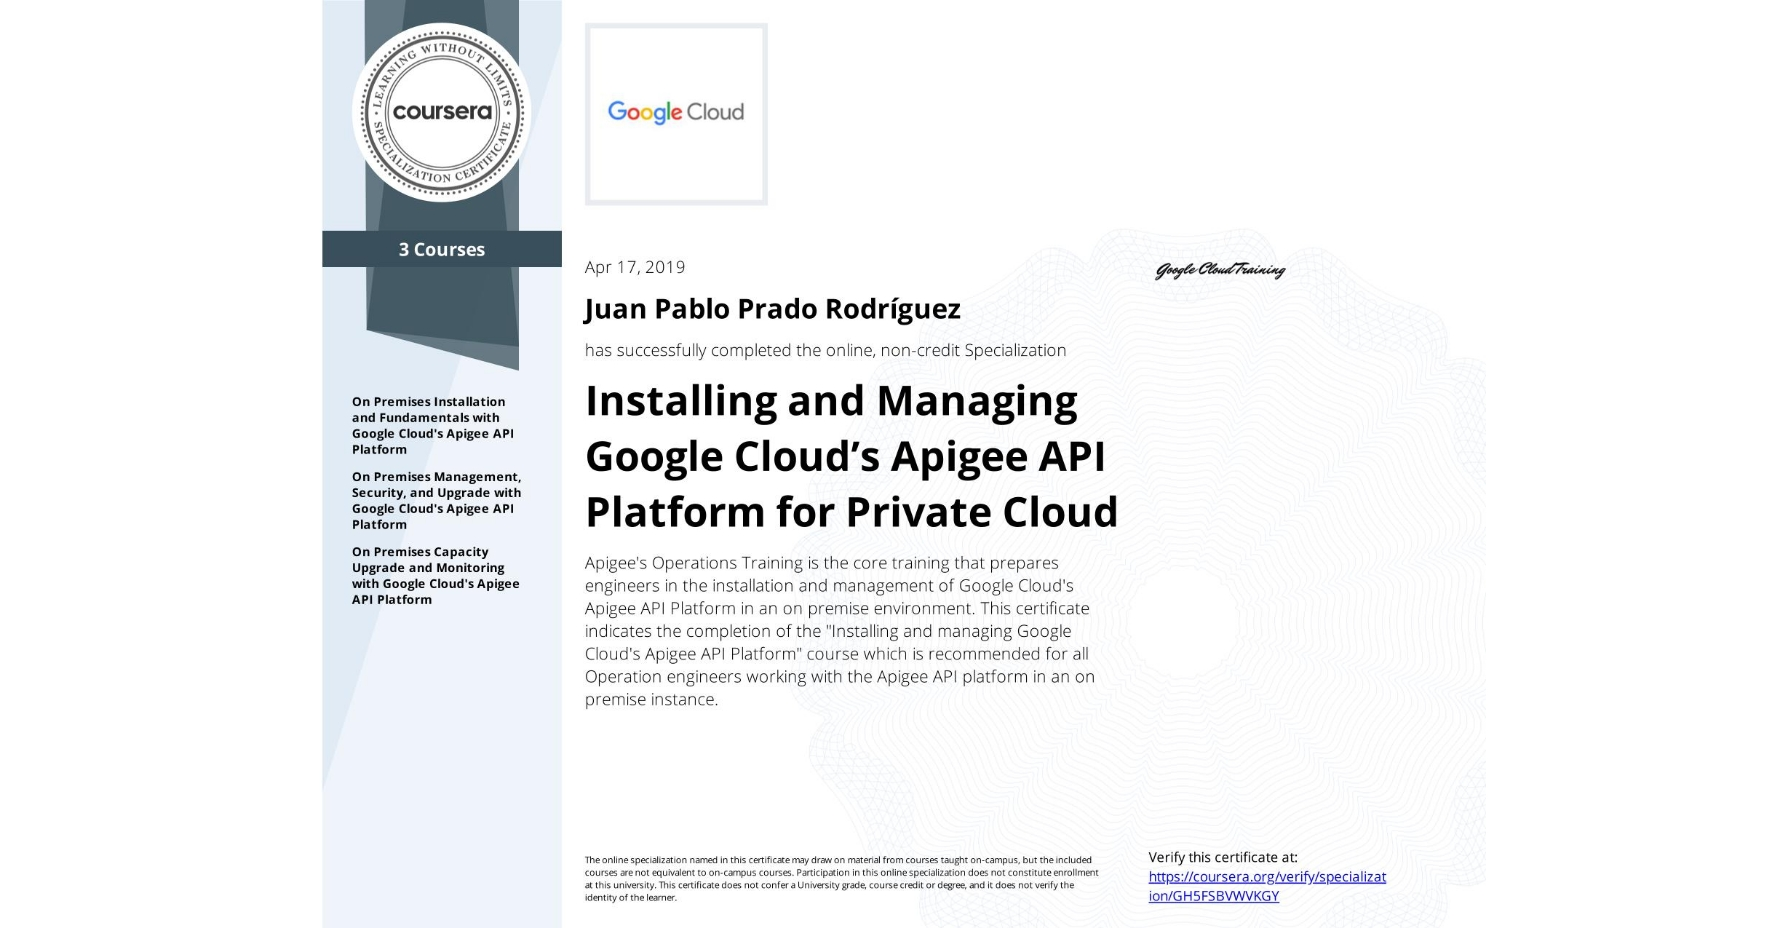 """View certificate for Juan Pablo Prado Rodríguez, Installing and Managing Google Cloud's Apigee API Platform for Private Cloud, offered through Coursera. Apigee's Operations Training is the core training that prepares engineers in the installation and management of Google Cloud's Apigee API Platform in an on premise environment. This certificate indicates the completion of the """"Installing and managing Google Cloud's Apigee API Platform"""" course which is recommended for all Operation engineers working with the Apigee API platform in an on premise instance."""